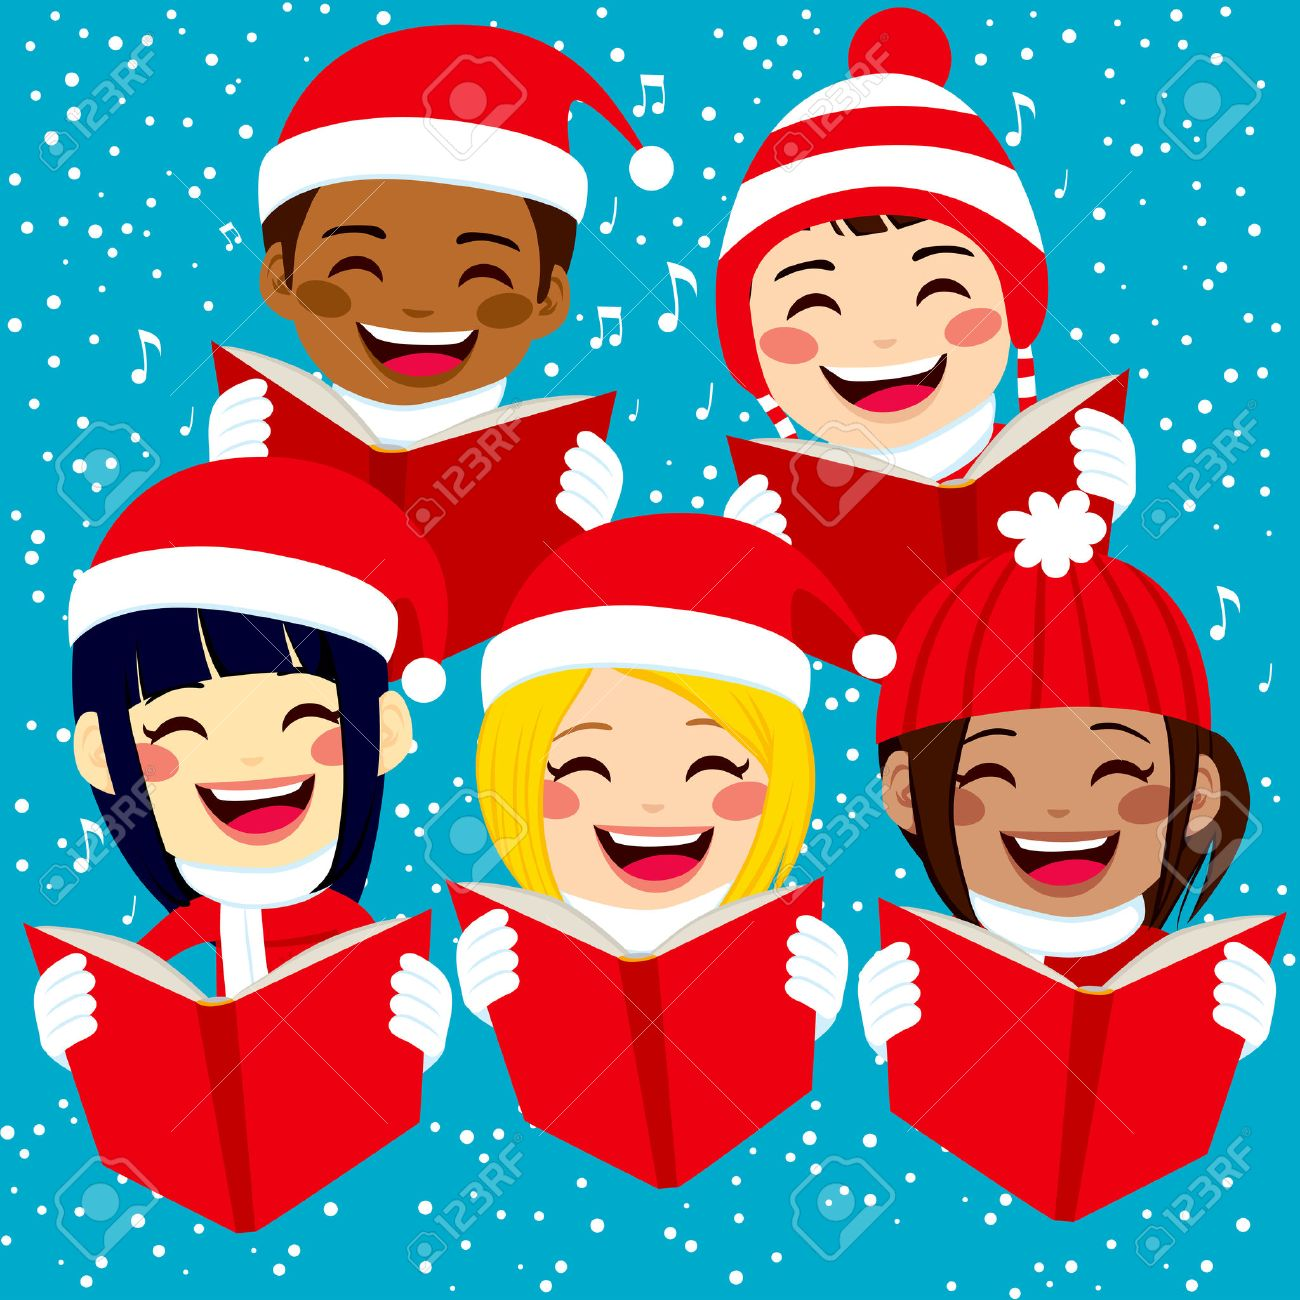 Christmas Singing Images.Five Cute Happy Children Singing Christmas Carols With Snowflakes